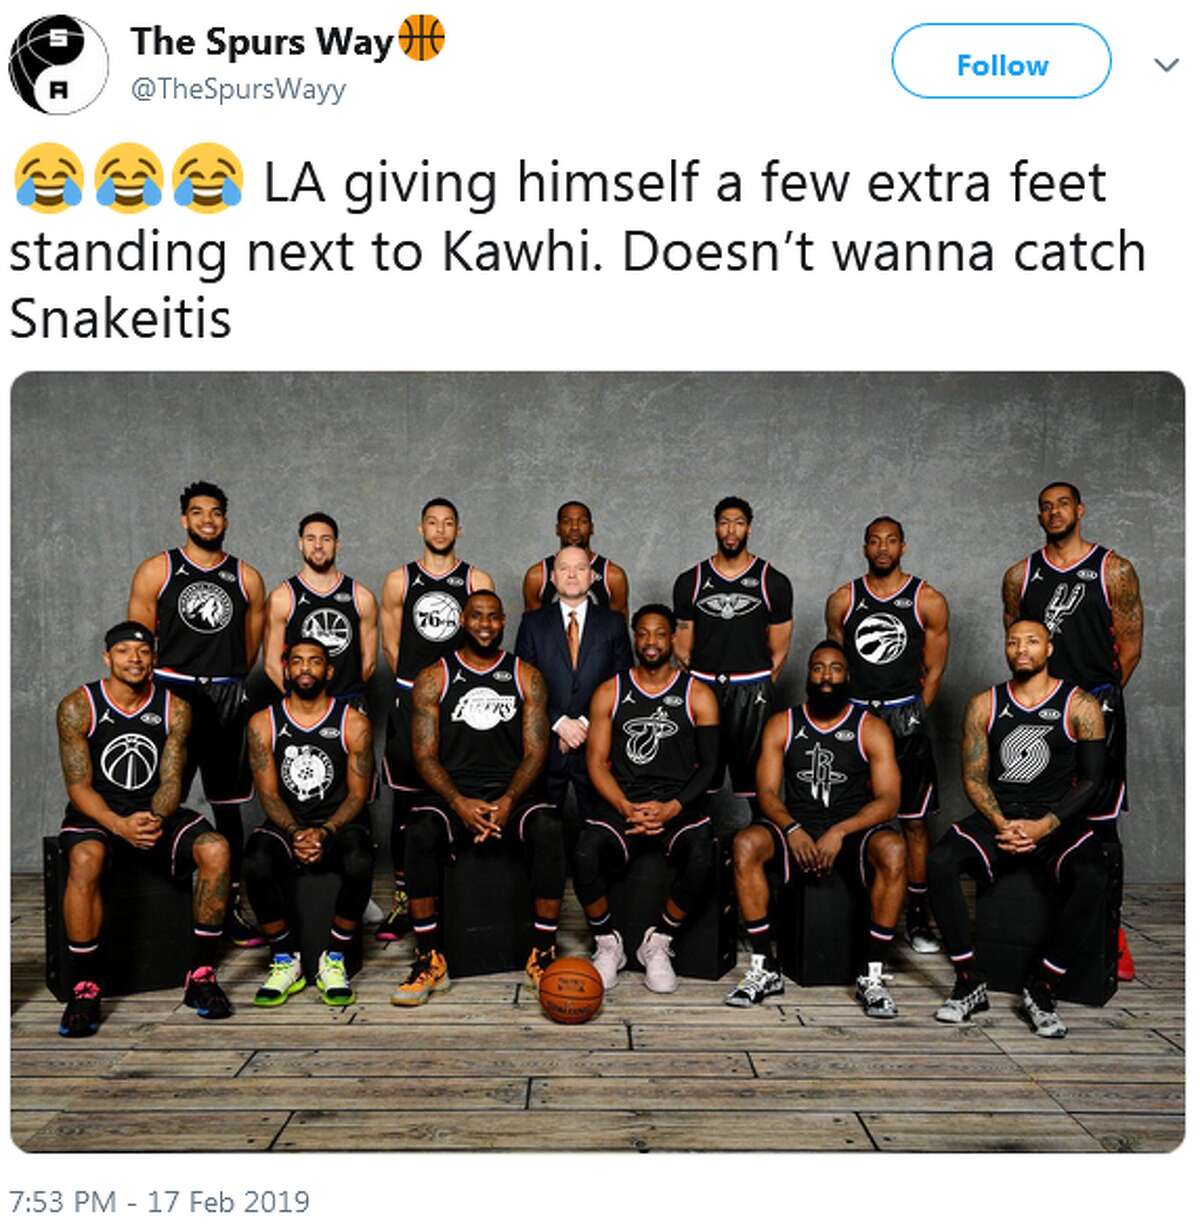 @TheSpursWayy: LA giving himself a few extra feet standing next to Kawhi. Doesn't wanna catch Snakeitis